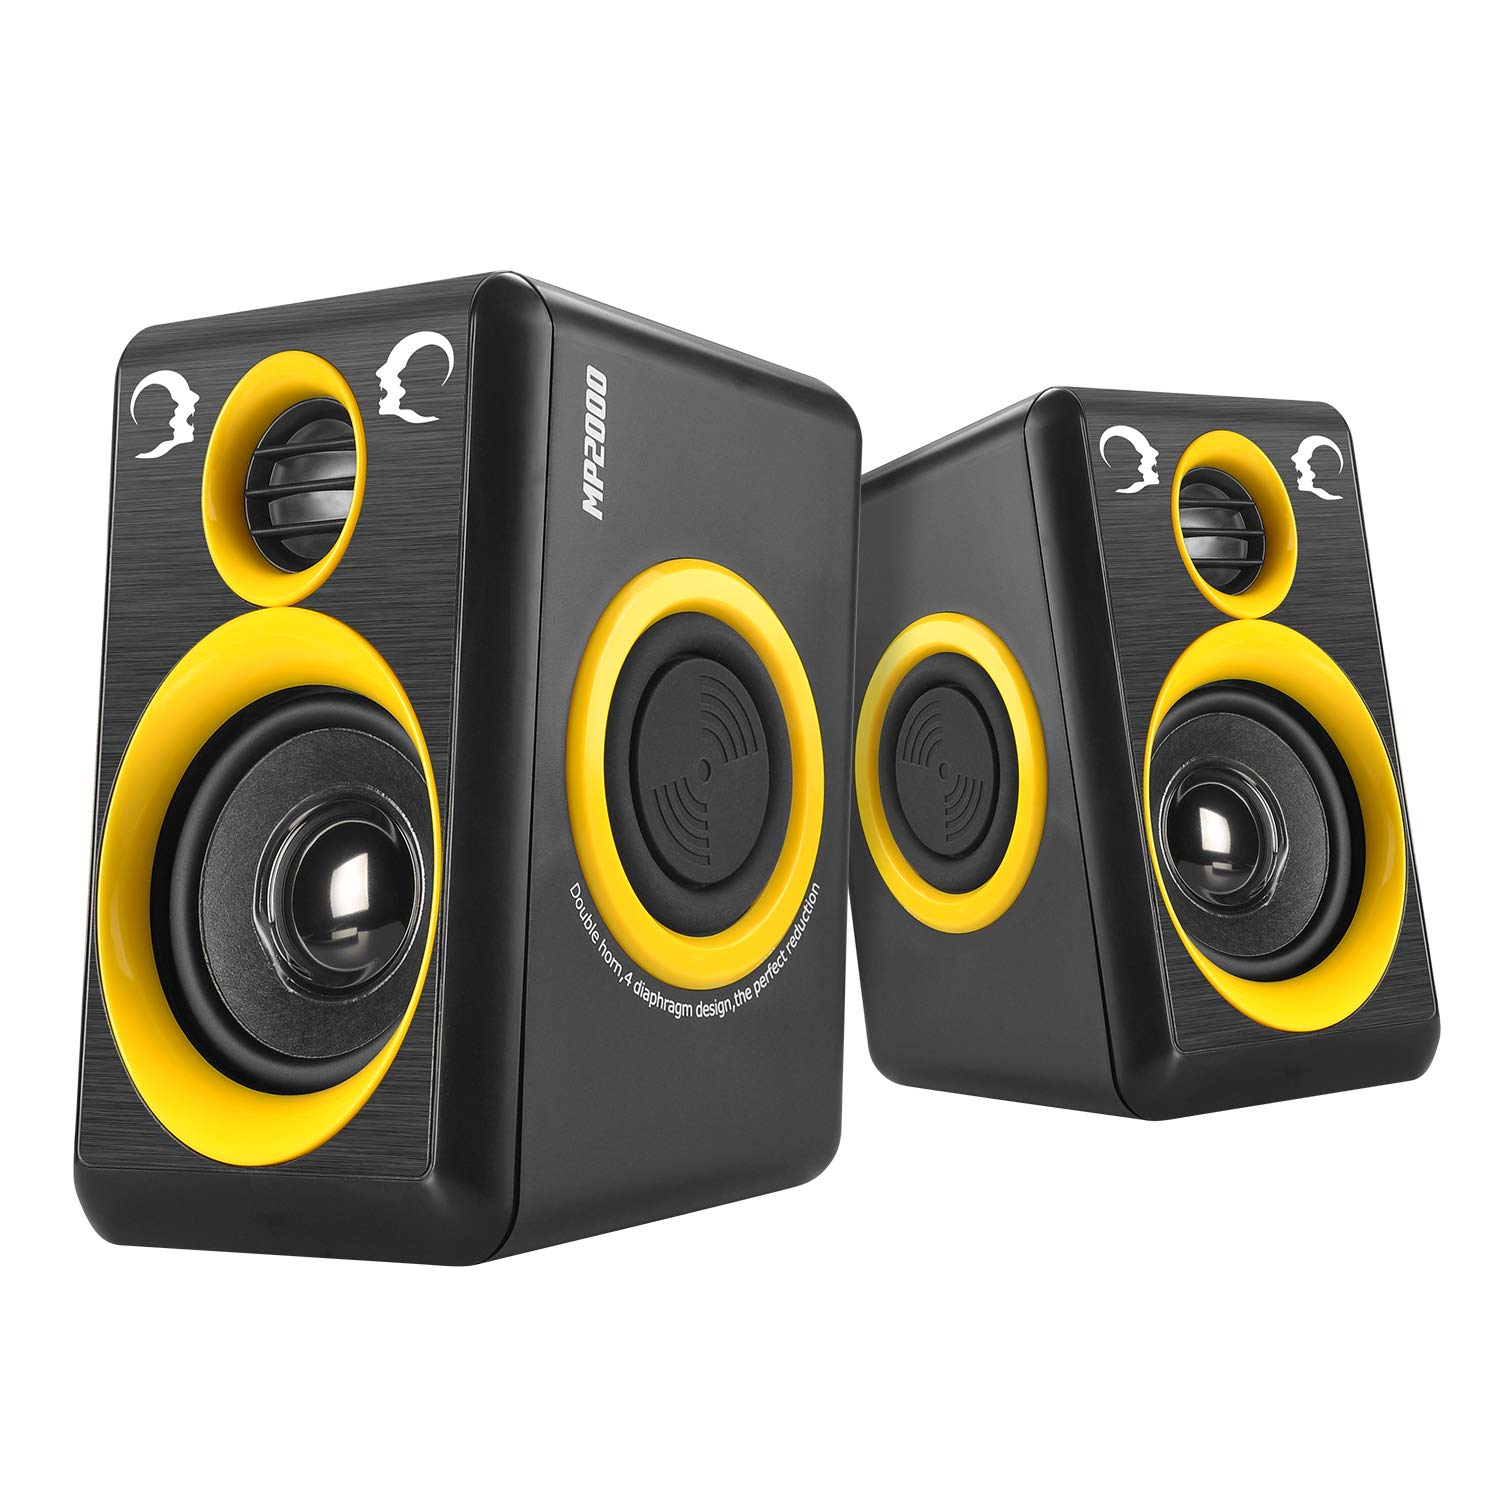 USB Powered 3.5mm Aux Small PC Laptop Speakers with 4 Bass Diaphragm Subwoofer Computer Speakers Reccazr MP2000 Stereo 2.0 Wired Multimedia Speakers Yellow